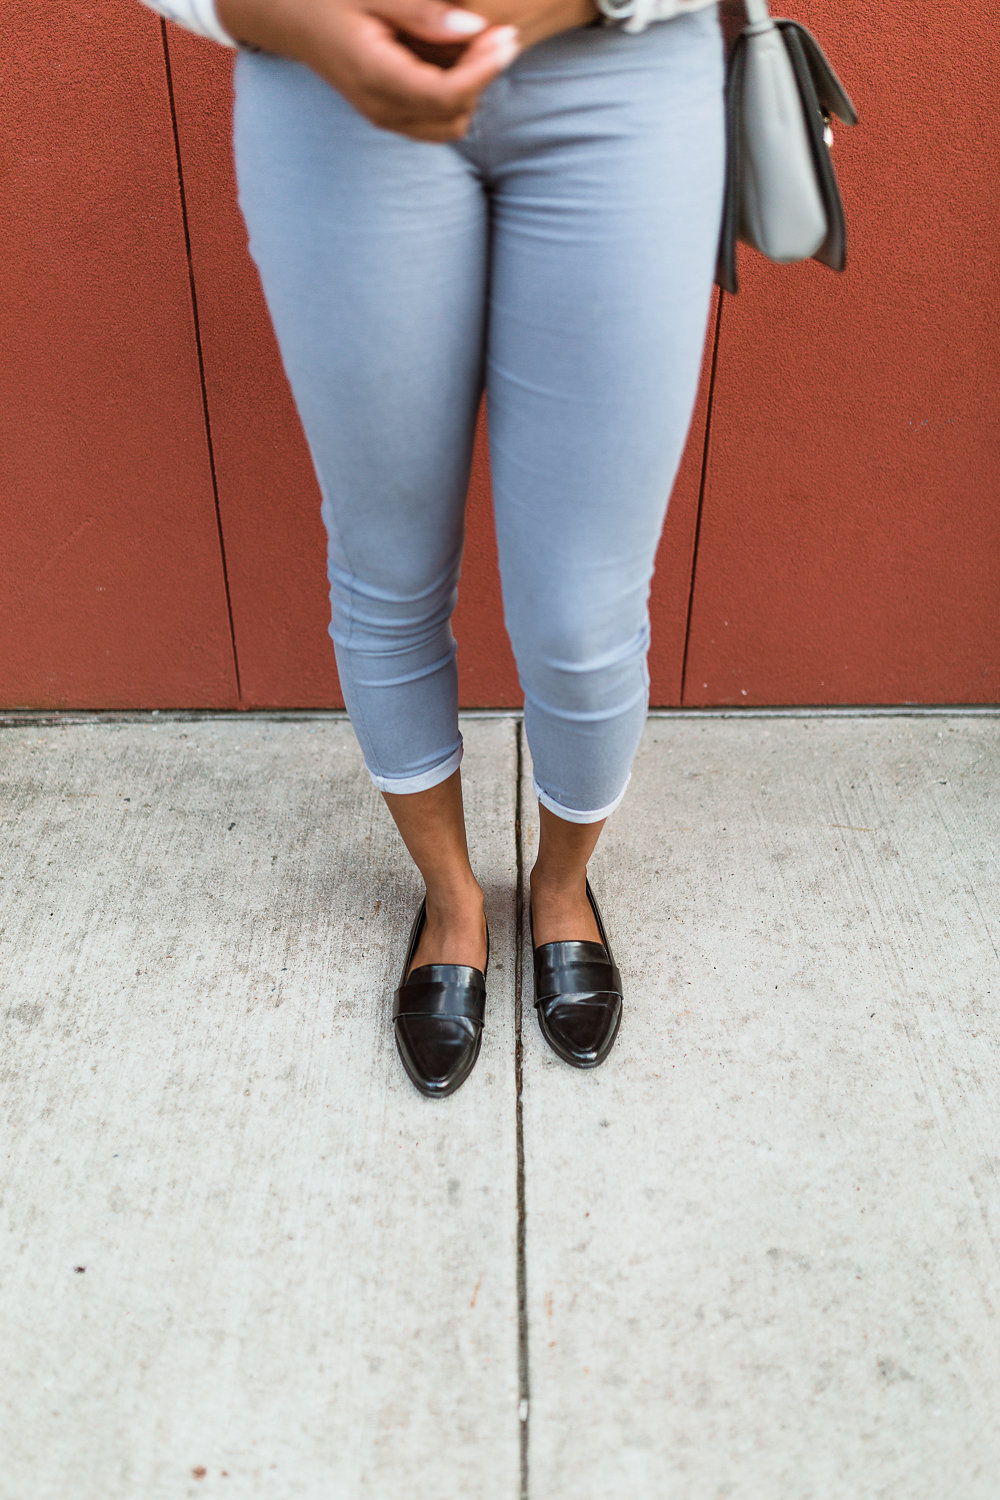 how to style black loafers